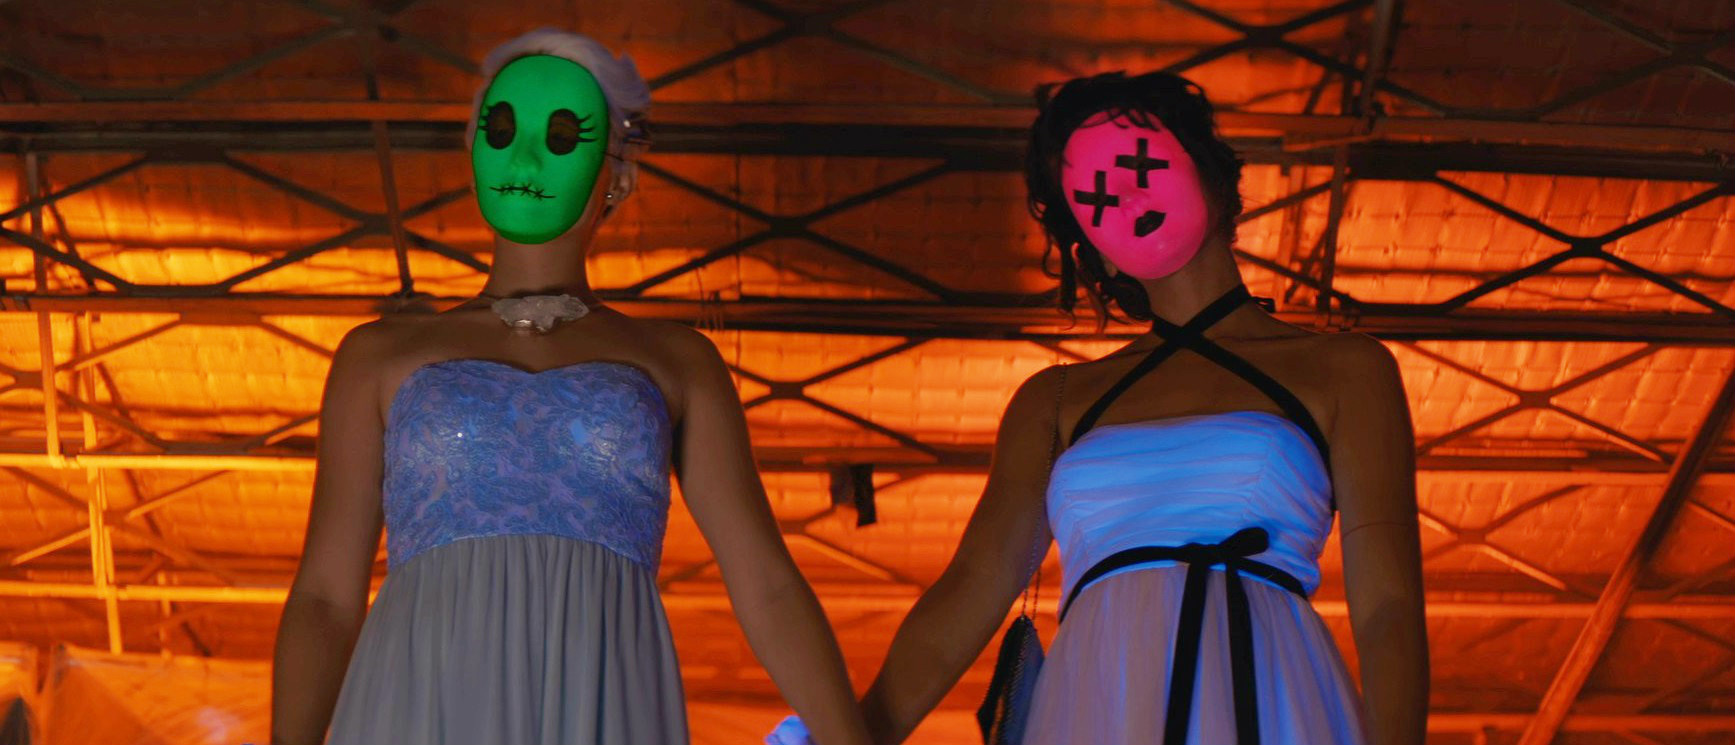 Tragedy girls image 4.jpgc2edited